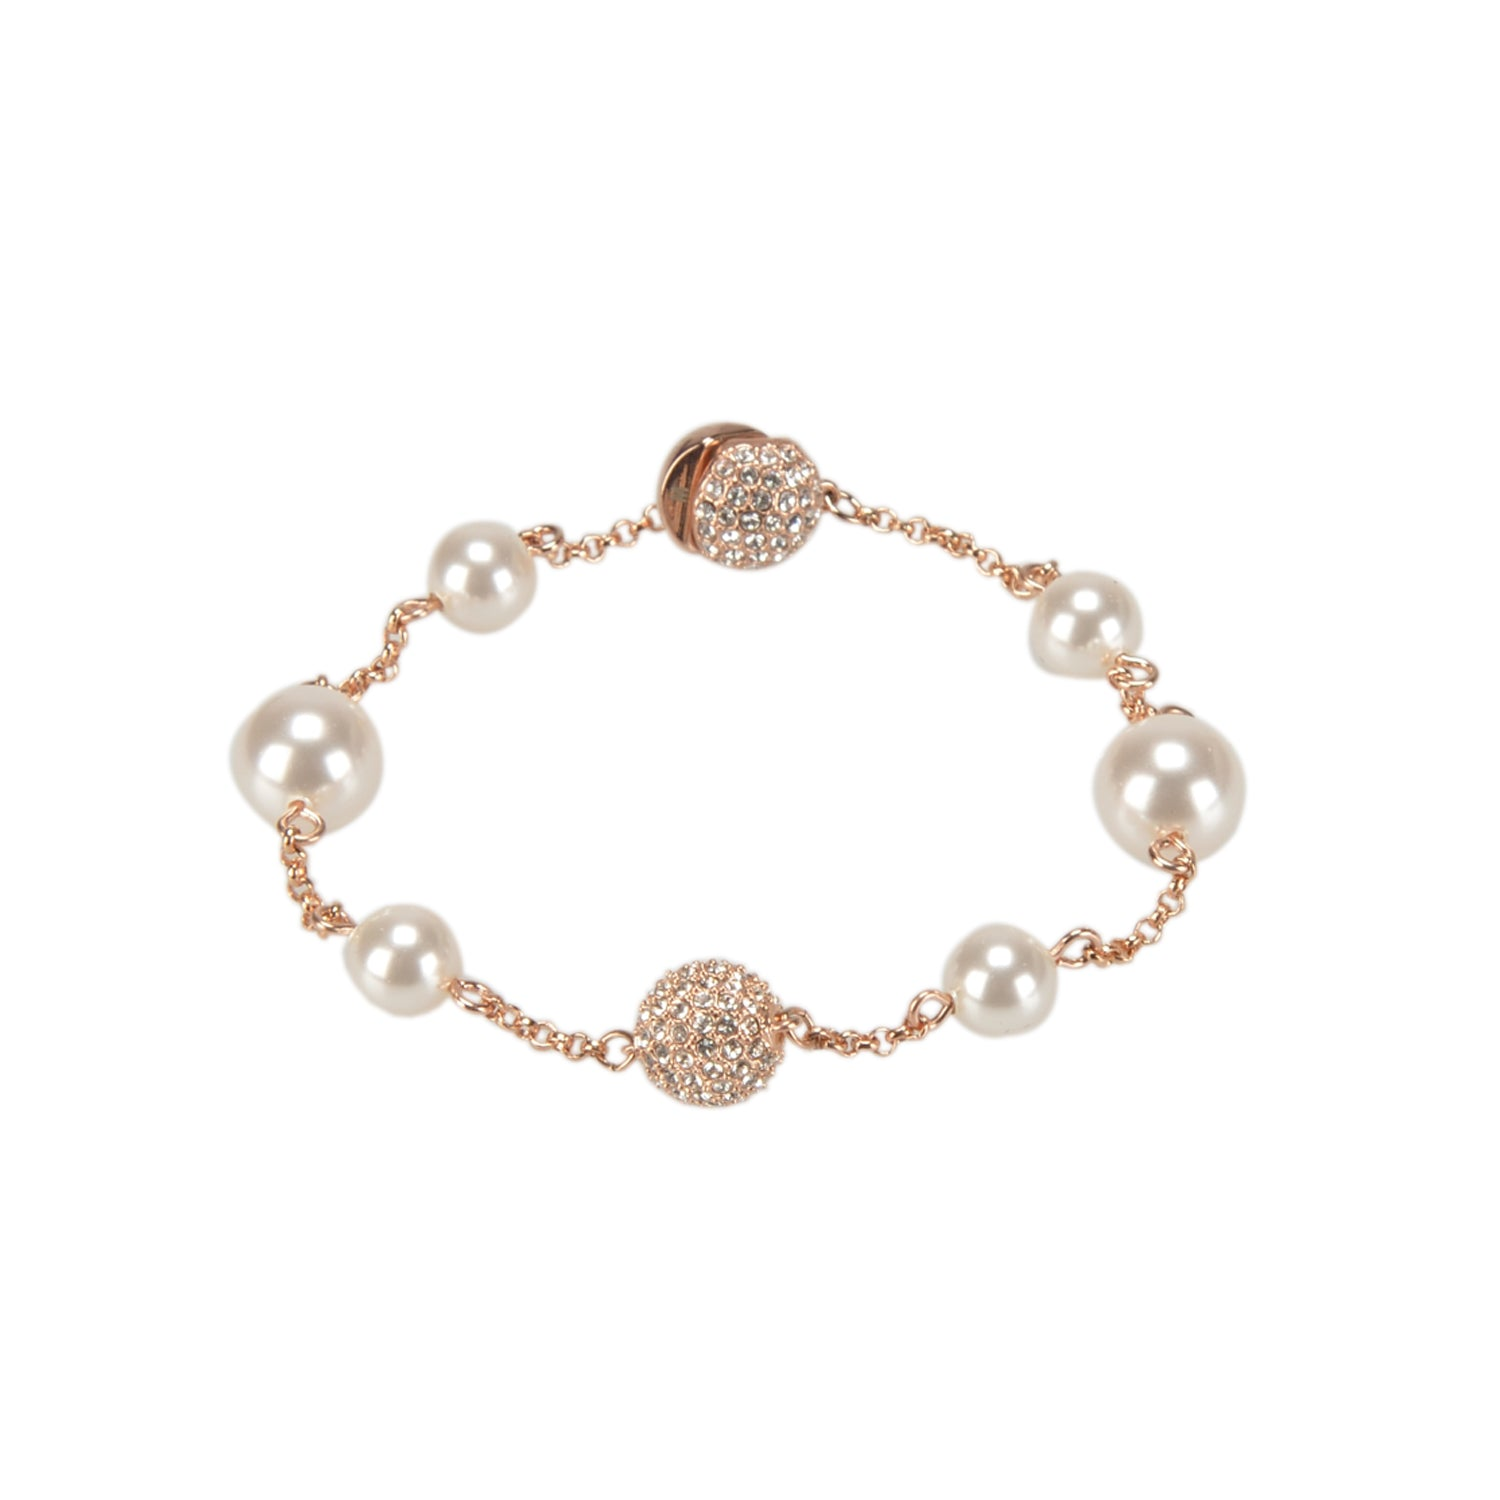 Swarovski Remix Collection White Round Pearl Strand In Rose-Gold Tone Plated | Shop Luxury Swarovski Bracelet Online